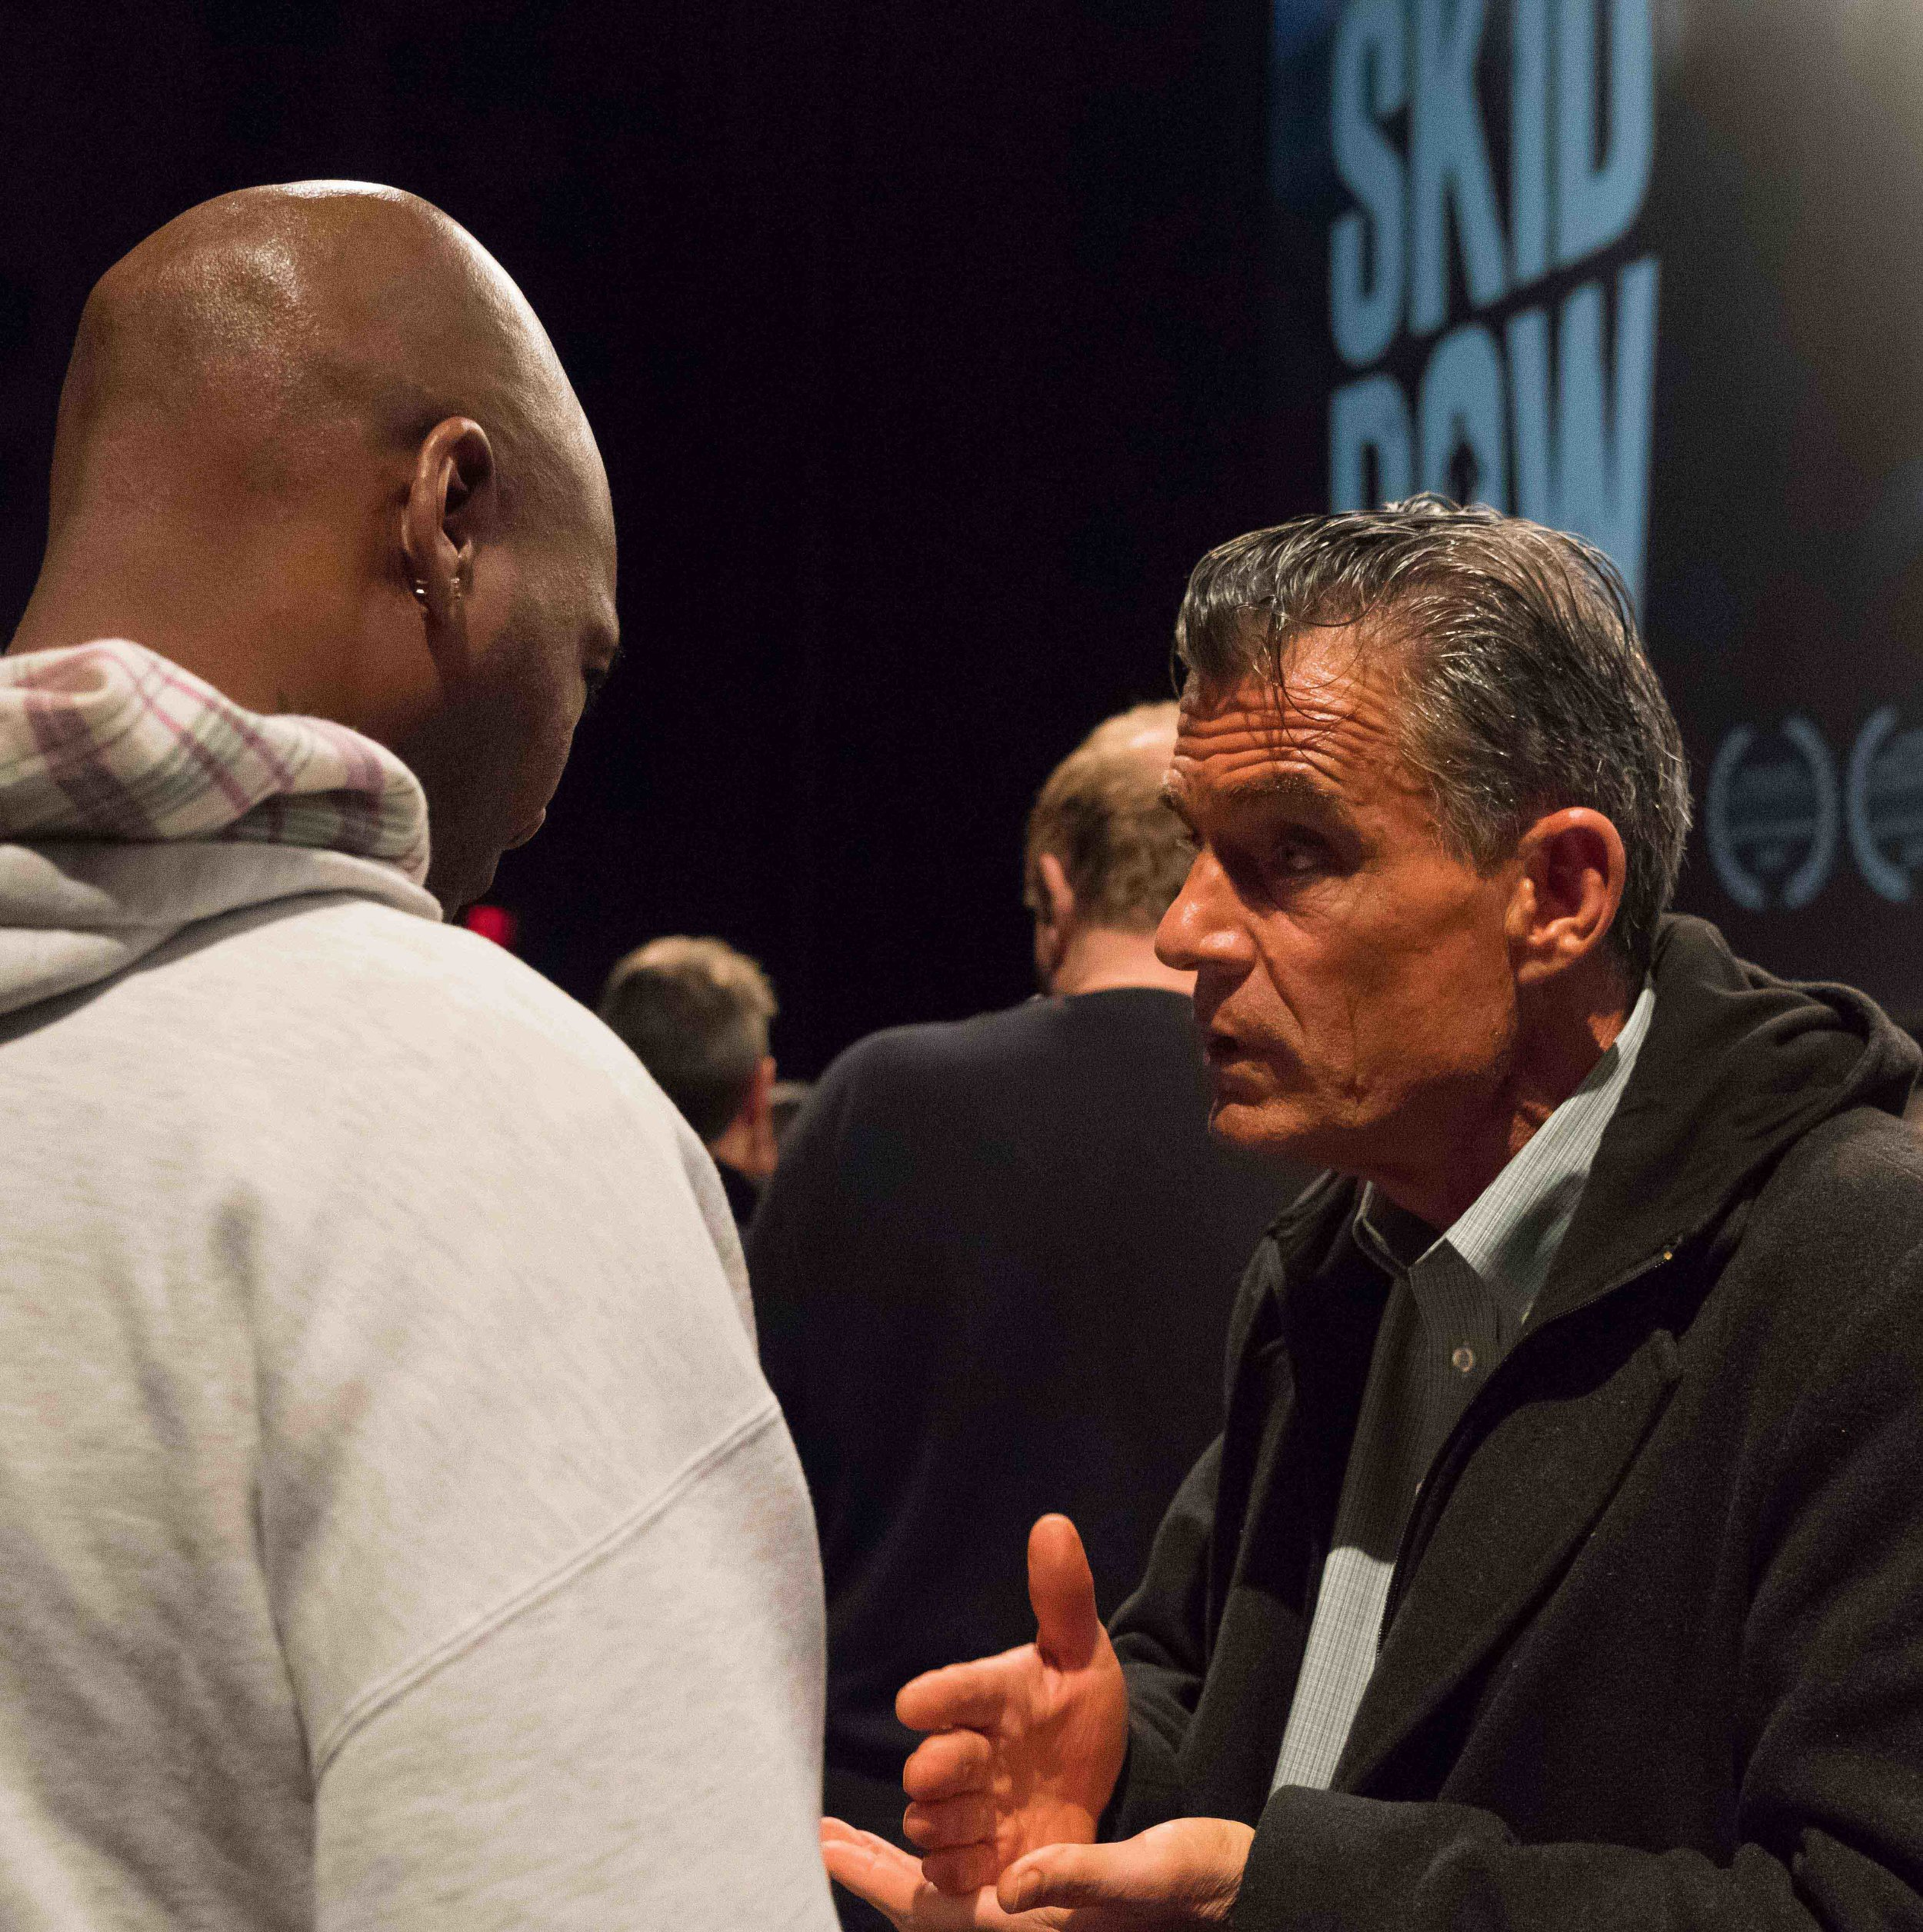 """Elijah Muhammad (left) approaches Judge Craig Mitchell (right) after a screening of the documentary, Skid Row Marathon, in Los Angeles, California on March 16, 2018. Muhammad asked the judge how he could join the Skid Row Running Club. """"Just show up,"""" said Judge Mitchell, telling Muhammad the days and time of their weekly training runs that meet at the Midnight Mission homeless shleter on Skid Row. (Helena Sung/Corsair Photo)"""